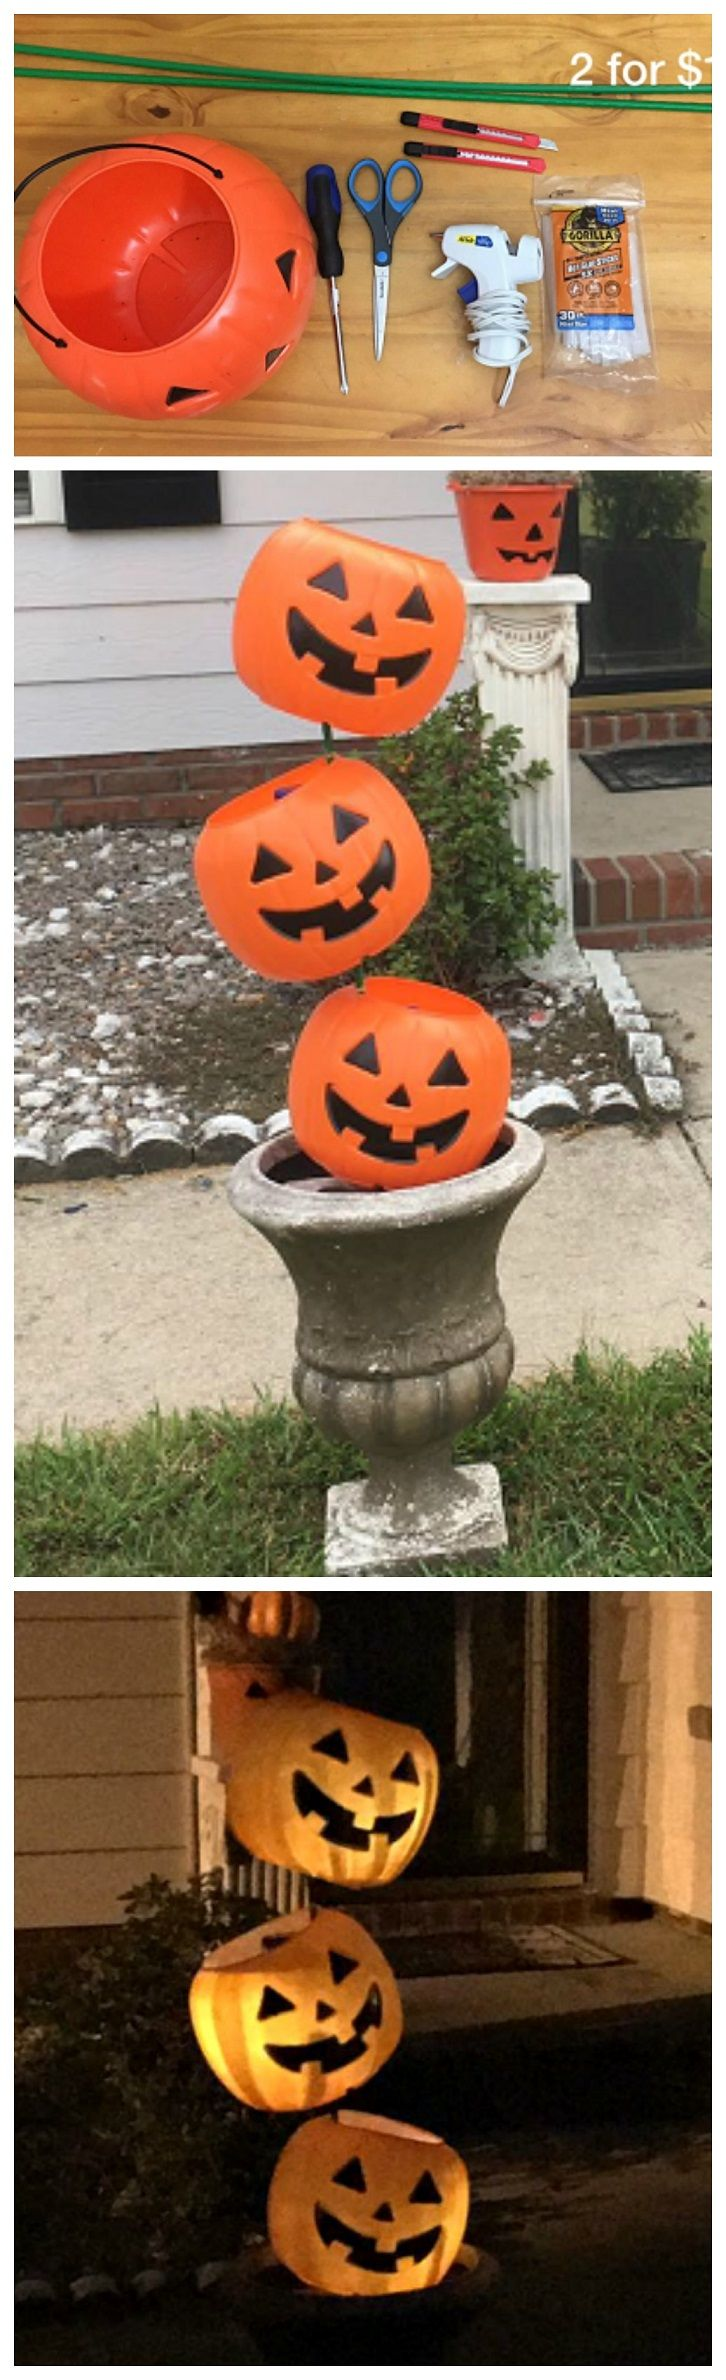 make a plastic pumpkin pail tipsy decoration for halloween such a cheap and easy craft - Cheap Diy Halloween Decorations